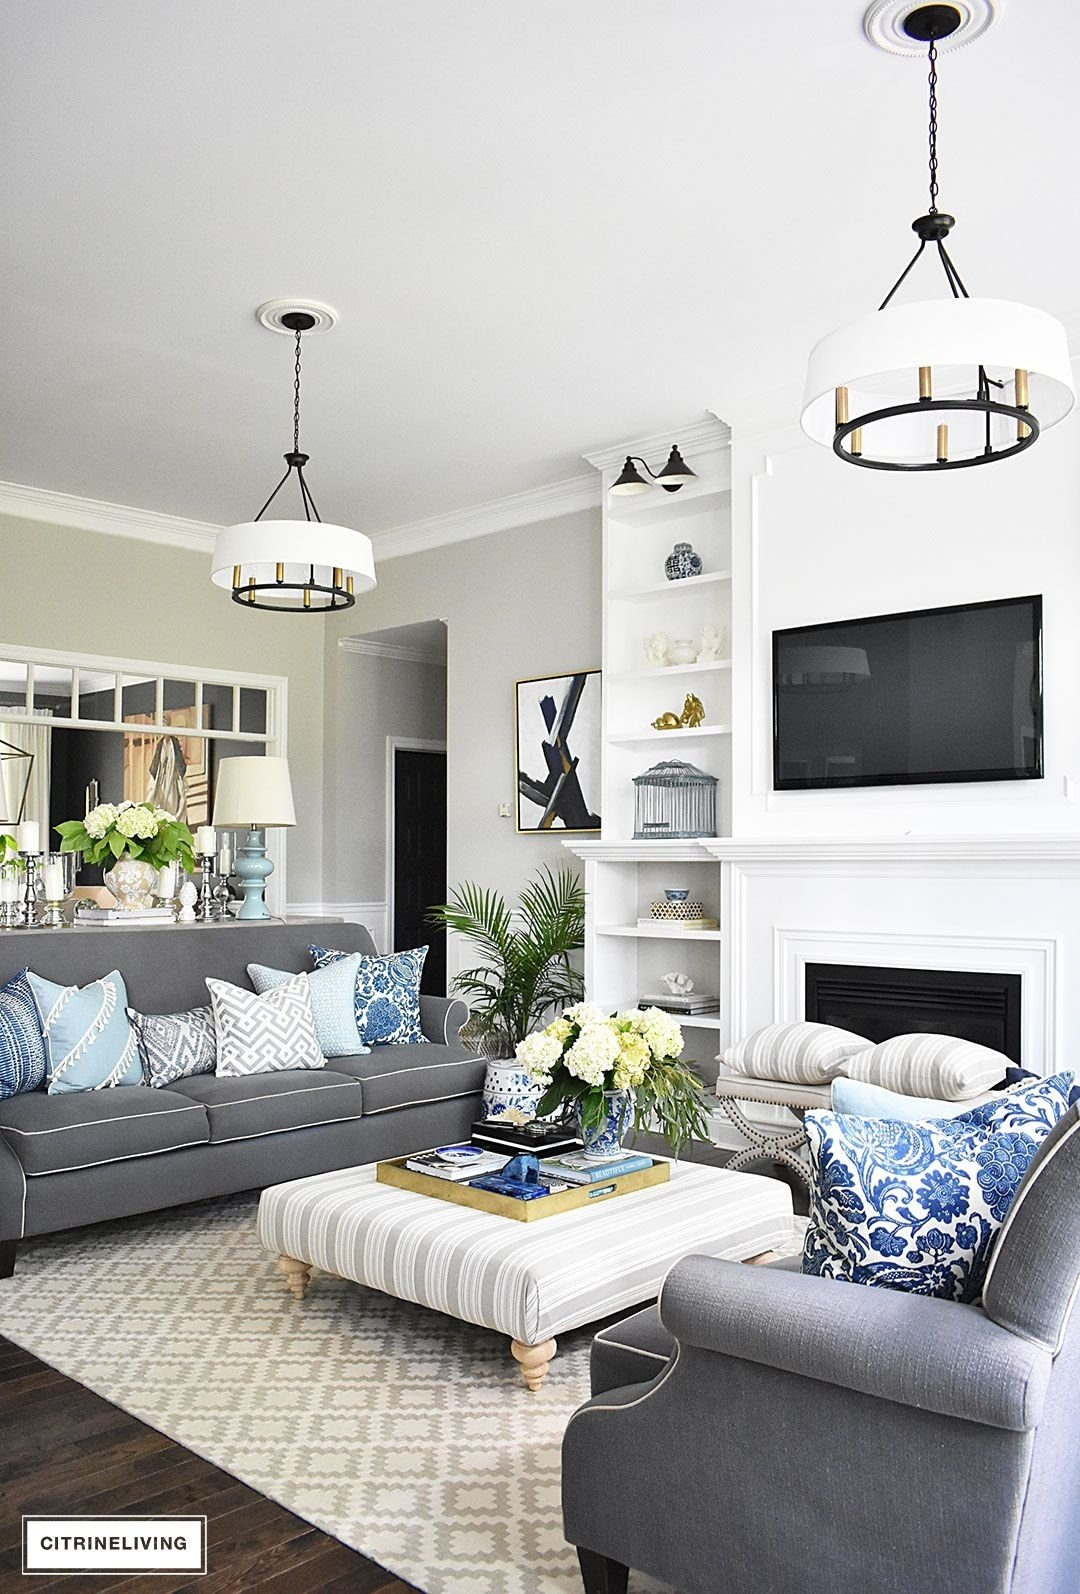 10 Stunning Blue And White Living Room Ideas 20 fresh ideas for decorating with blue and white living room 2021